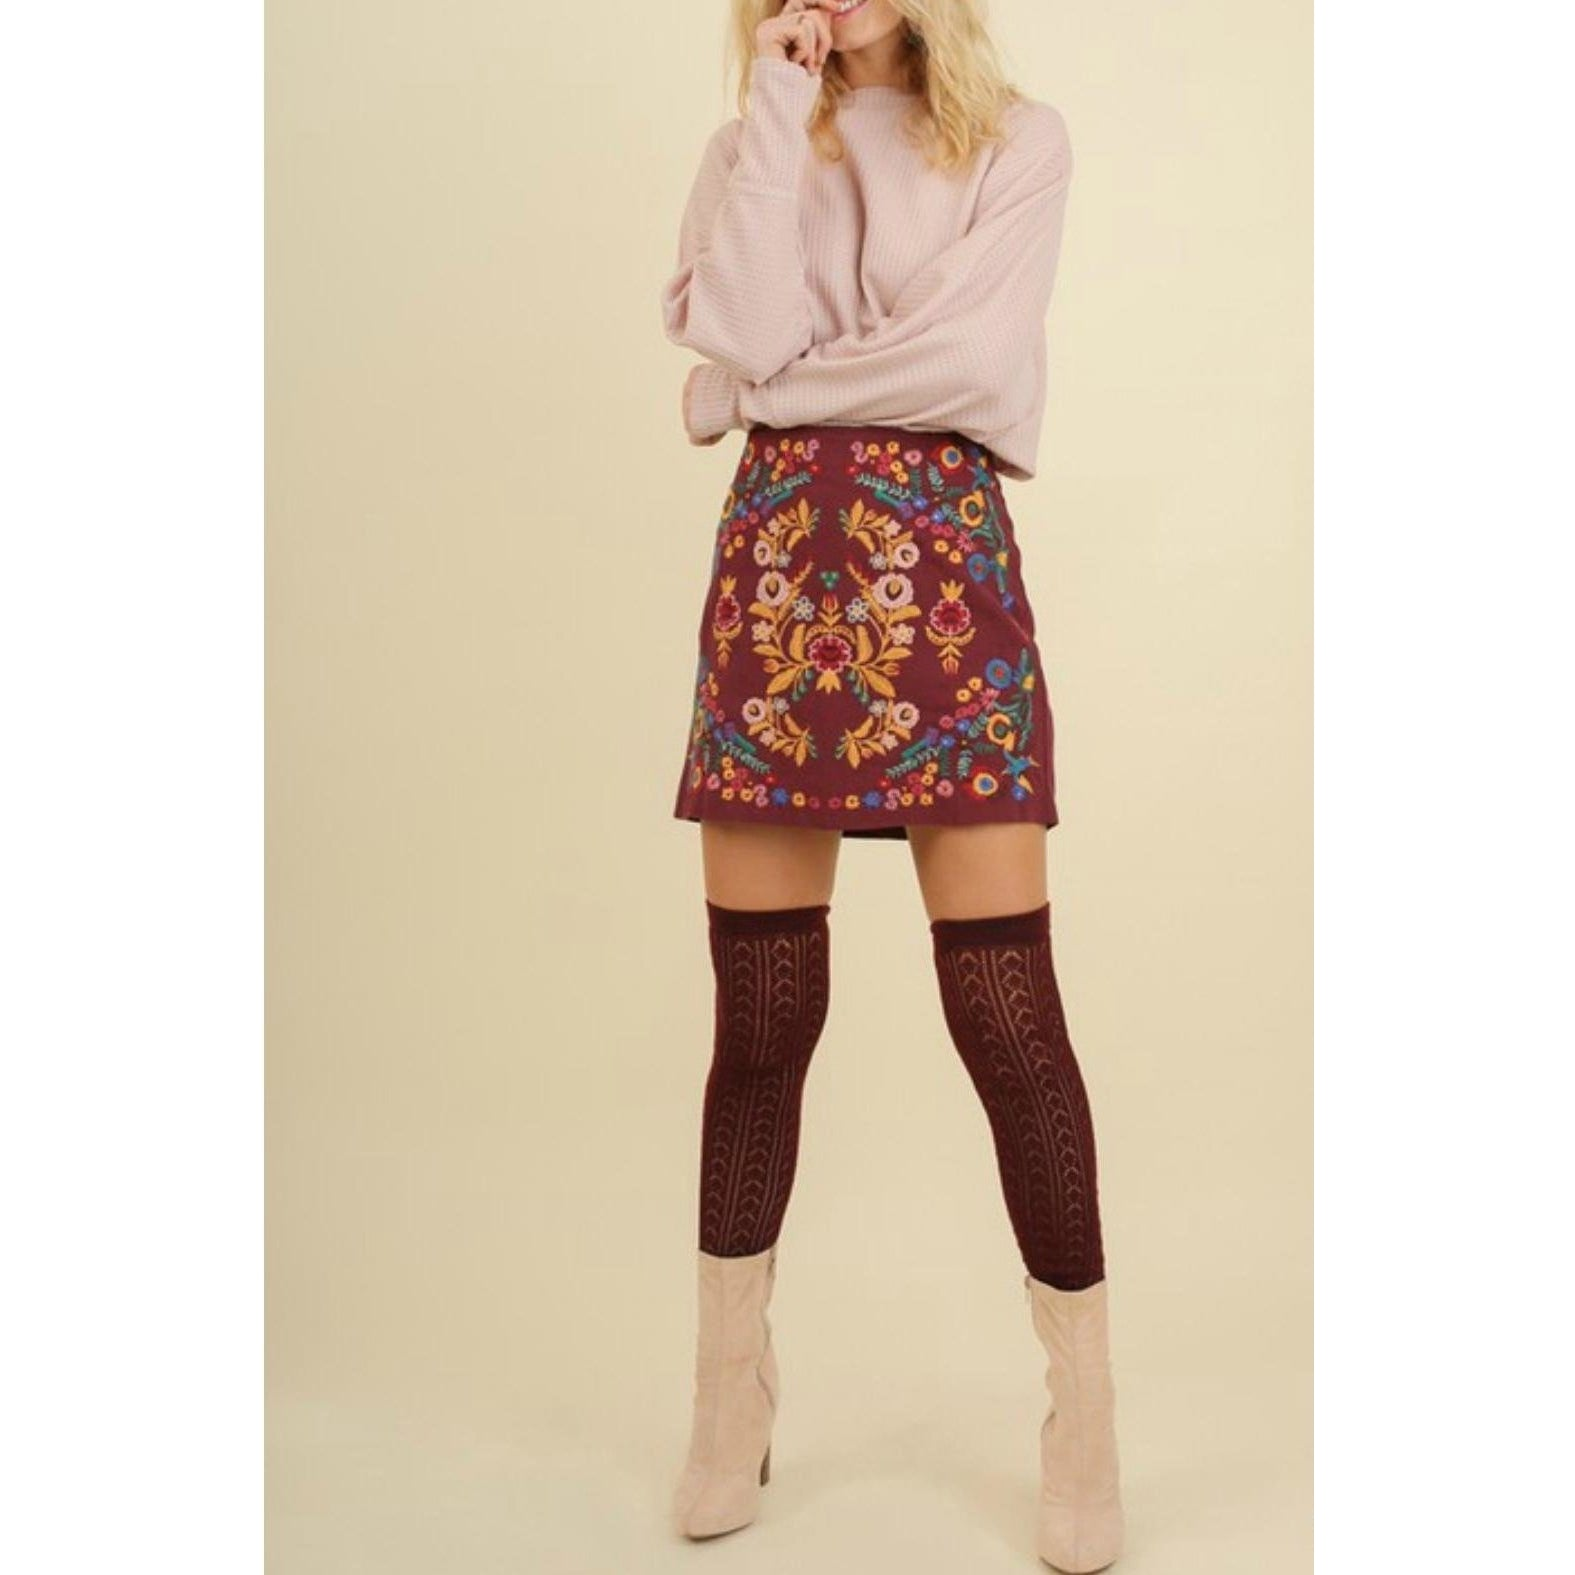 Ivy embroidered skirt